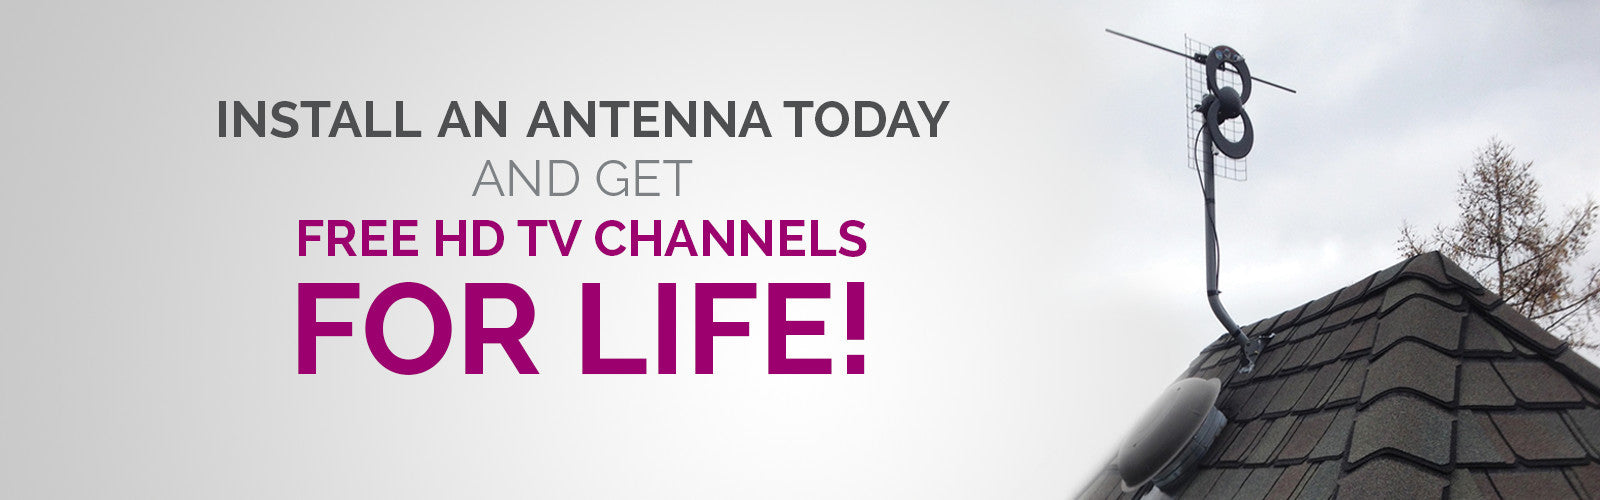 Free HD TV Channels for Life!